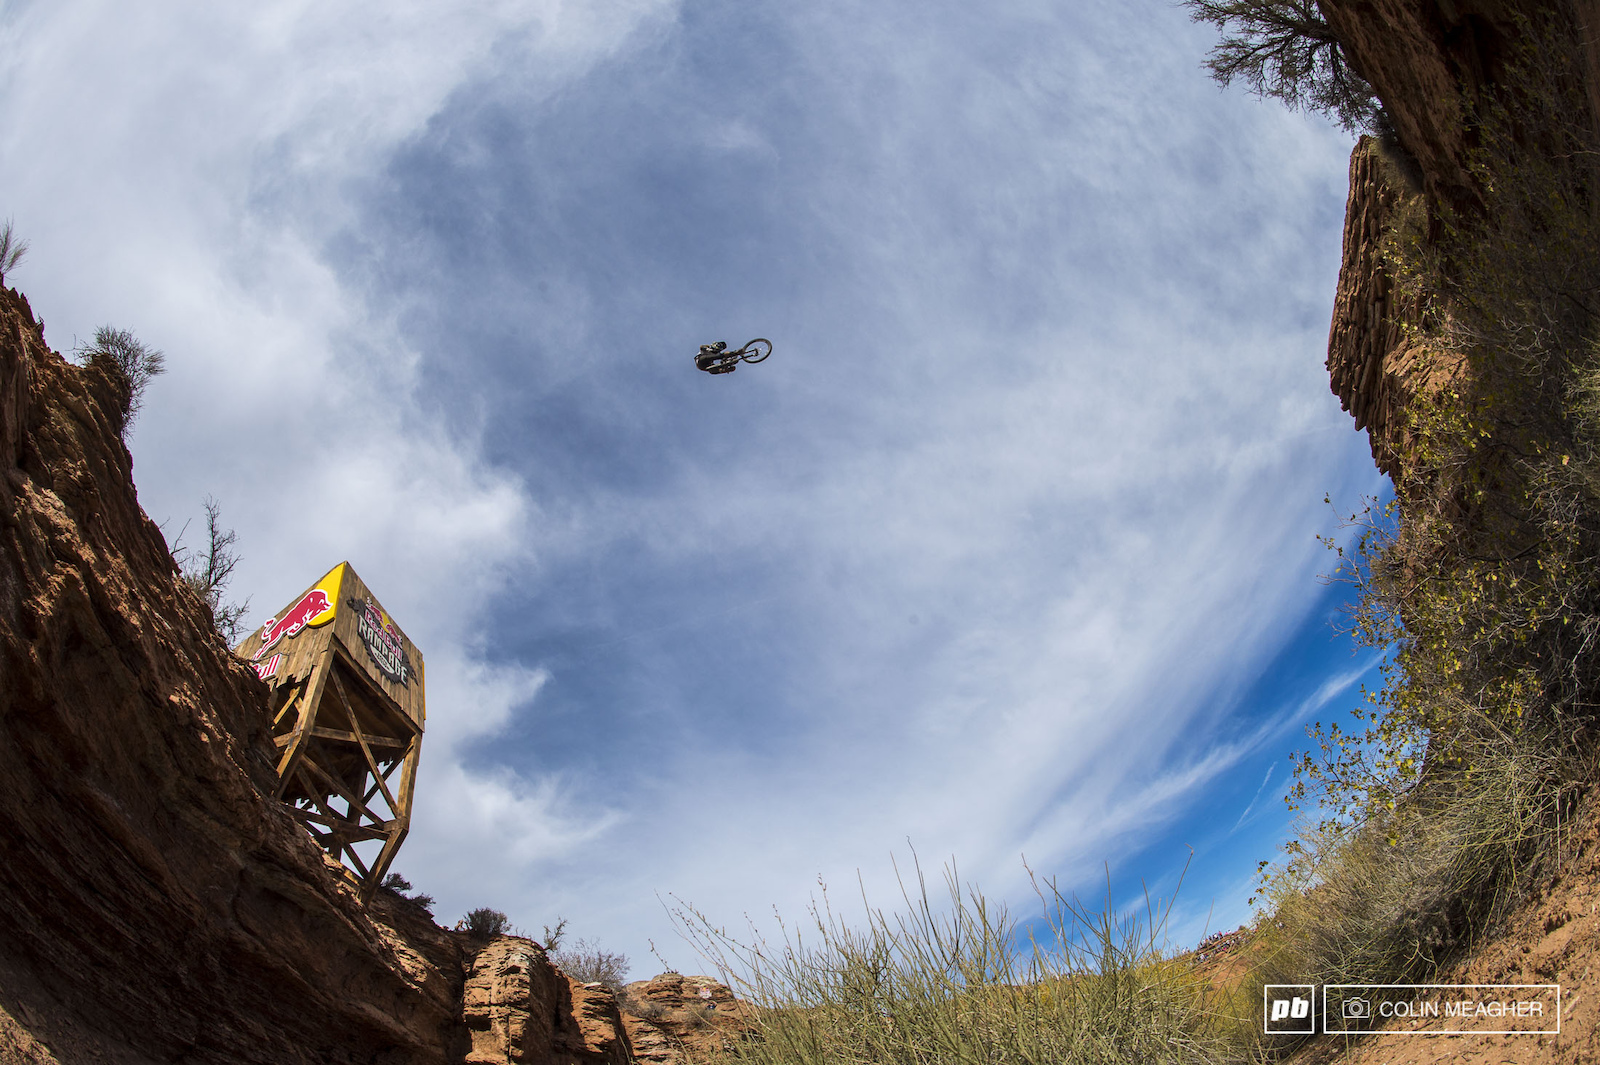 Nic Pescetto showing exactly how big the canyon gap is.